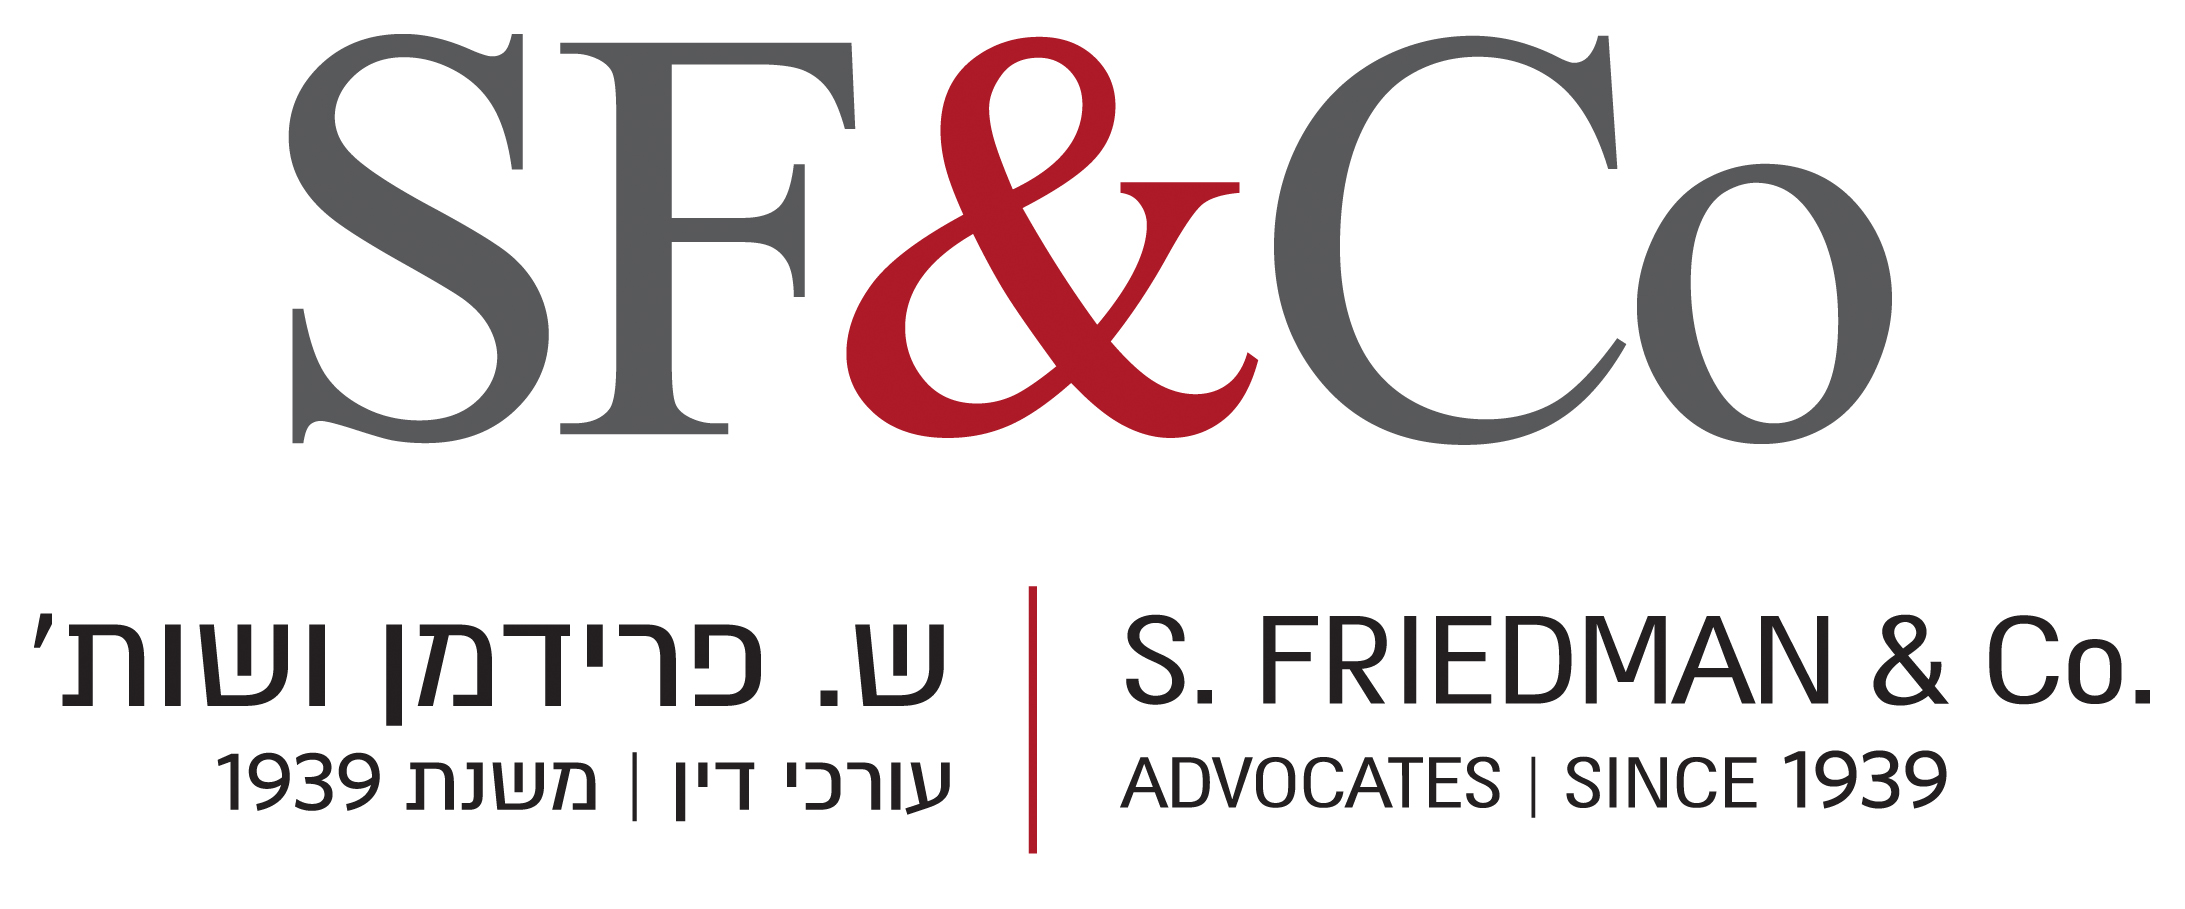 S. Friedman & Co., Advocates